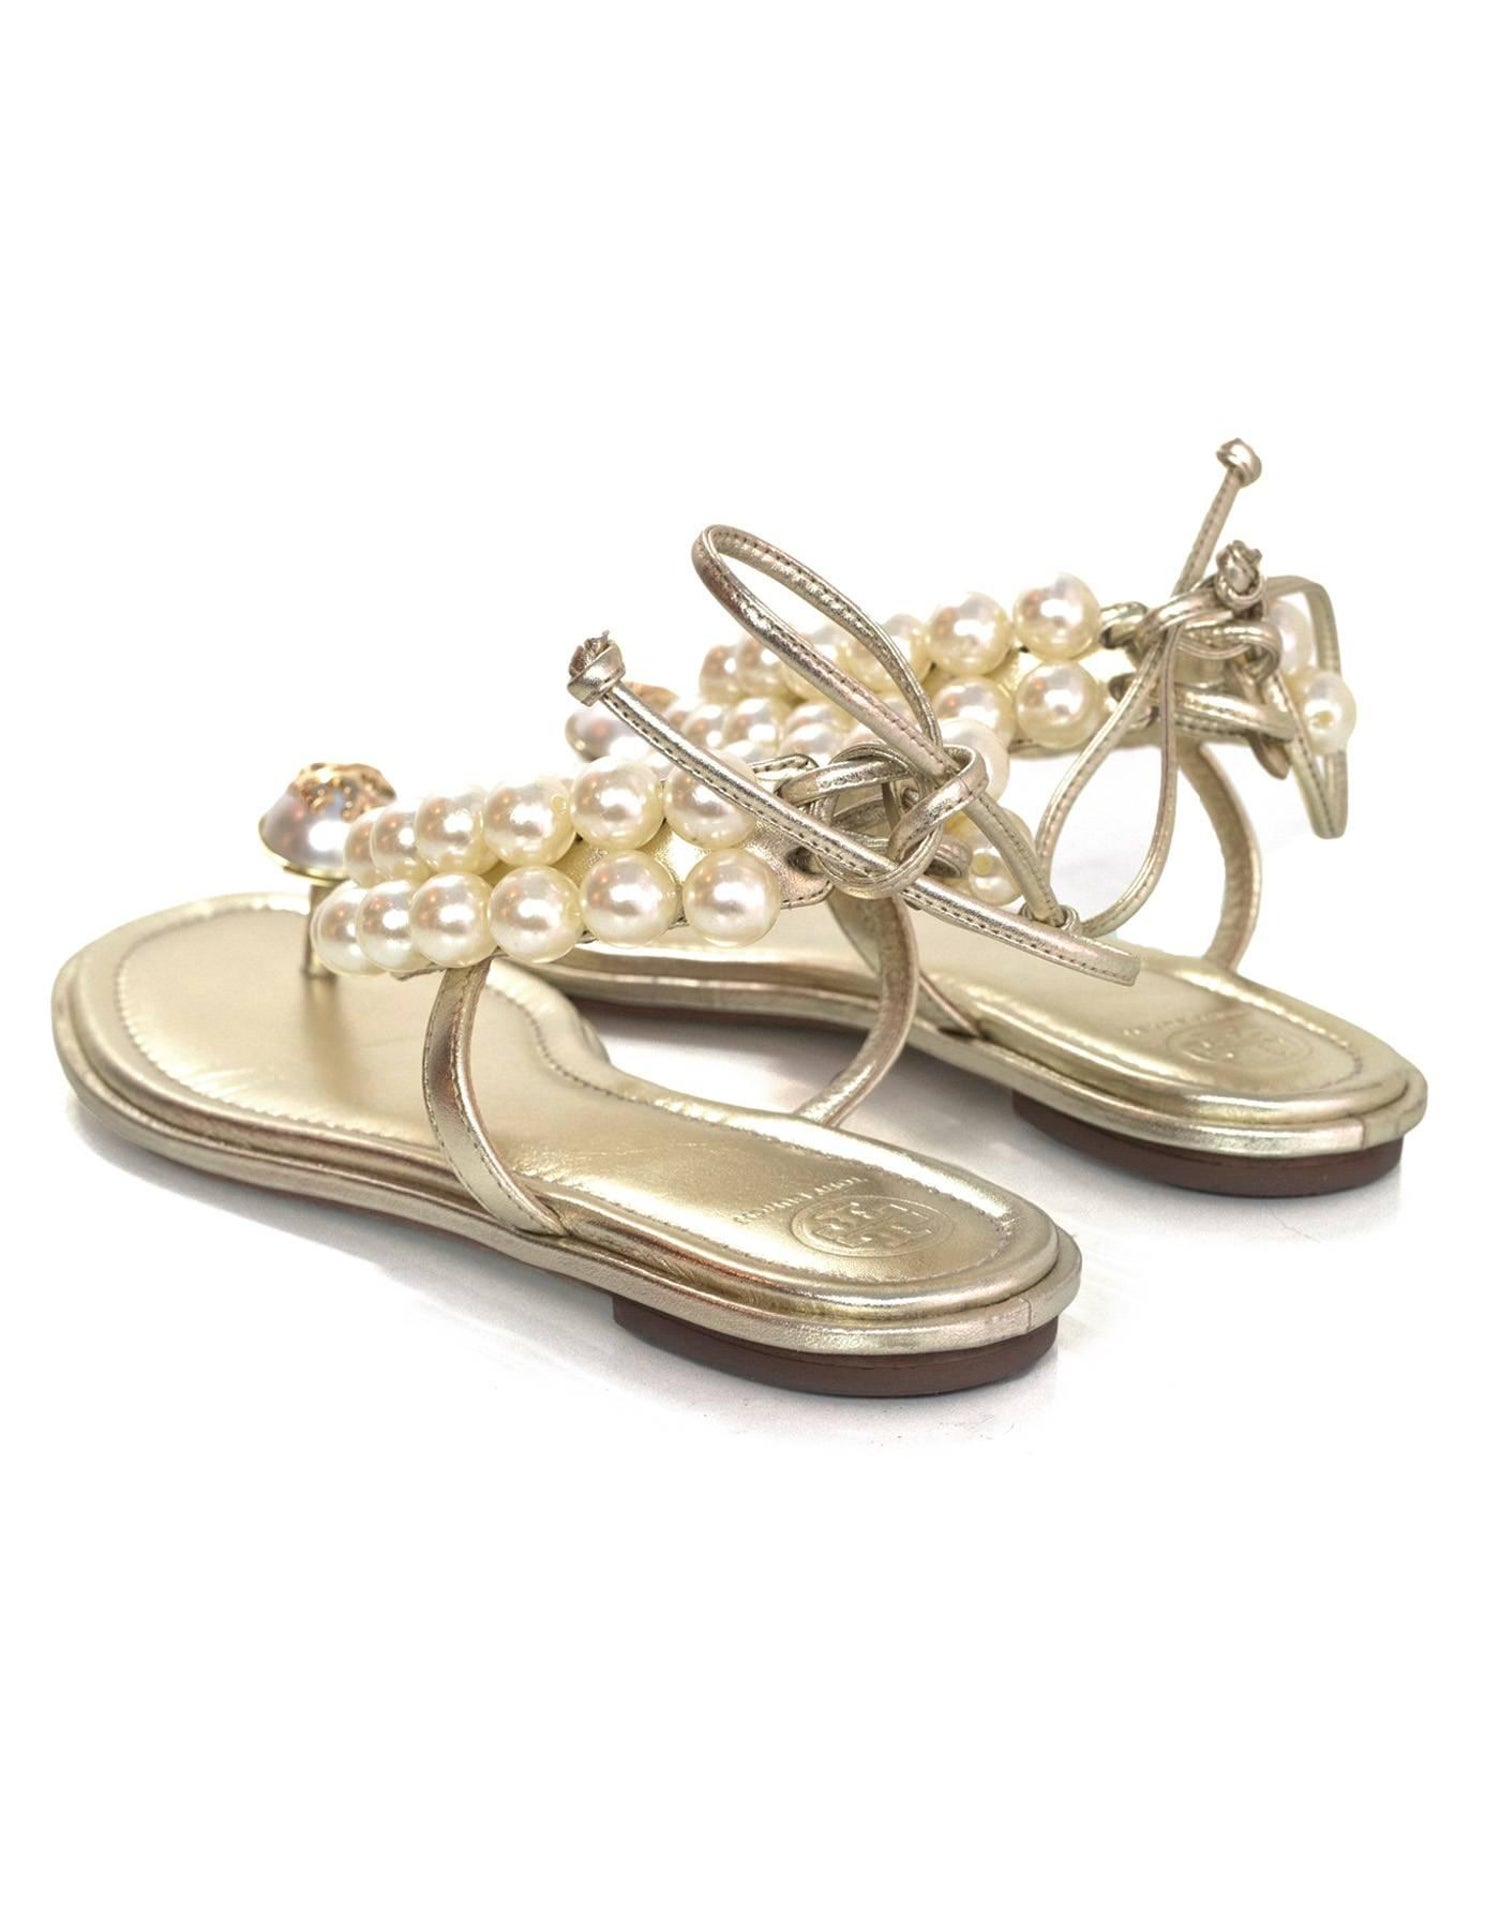 4bf73a22890 Tory Burch Melody Pearl Sandals Sz 9.5 rt.  325 For Sale at 1stdibs